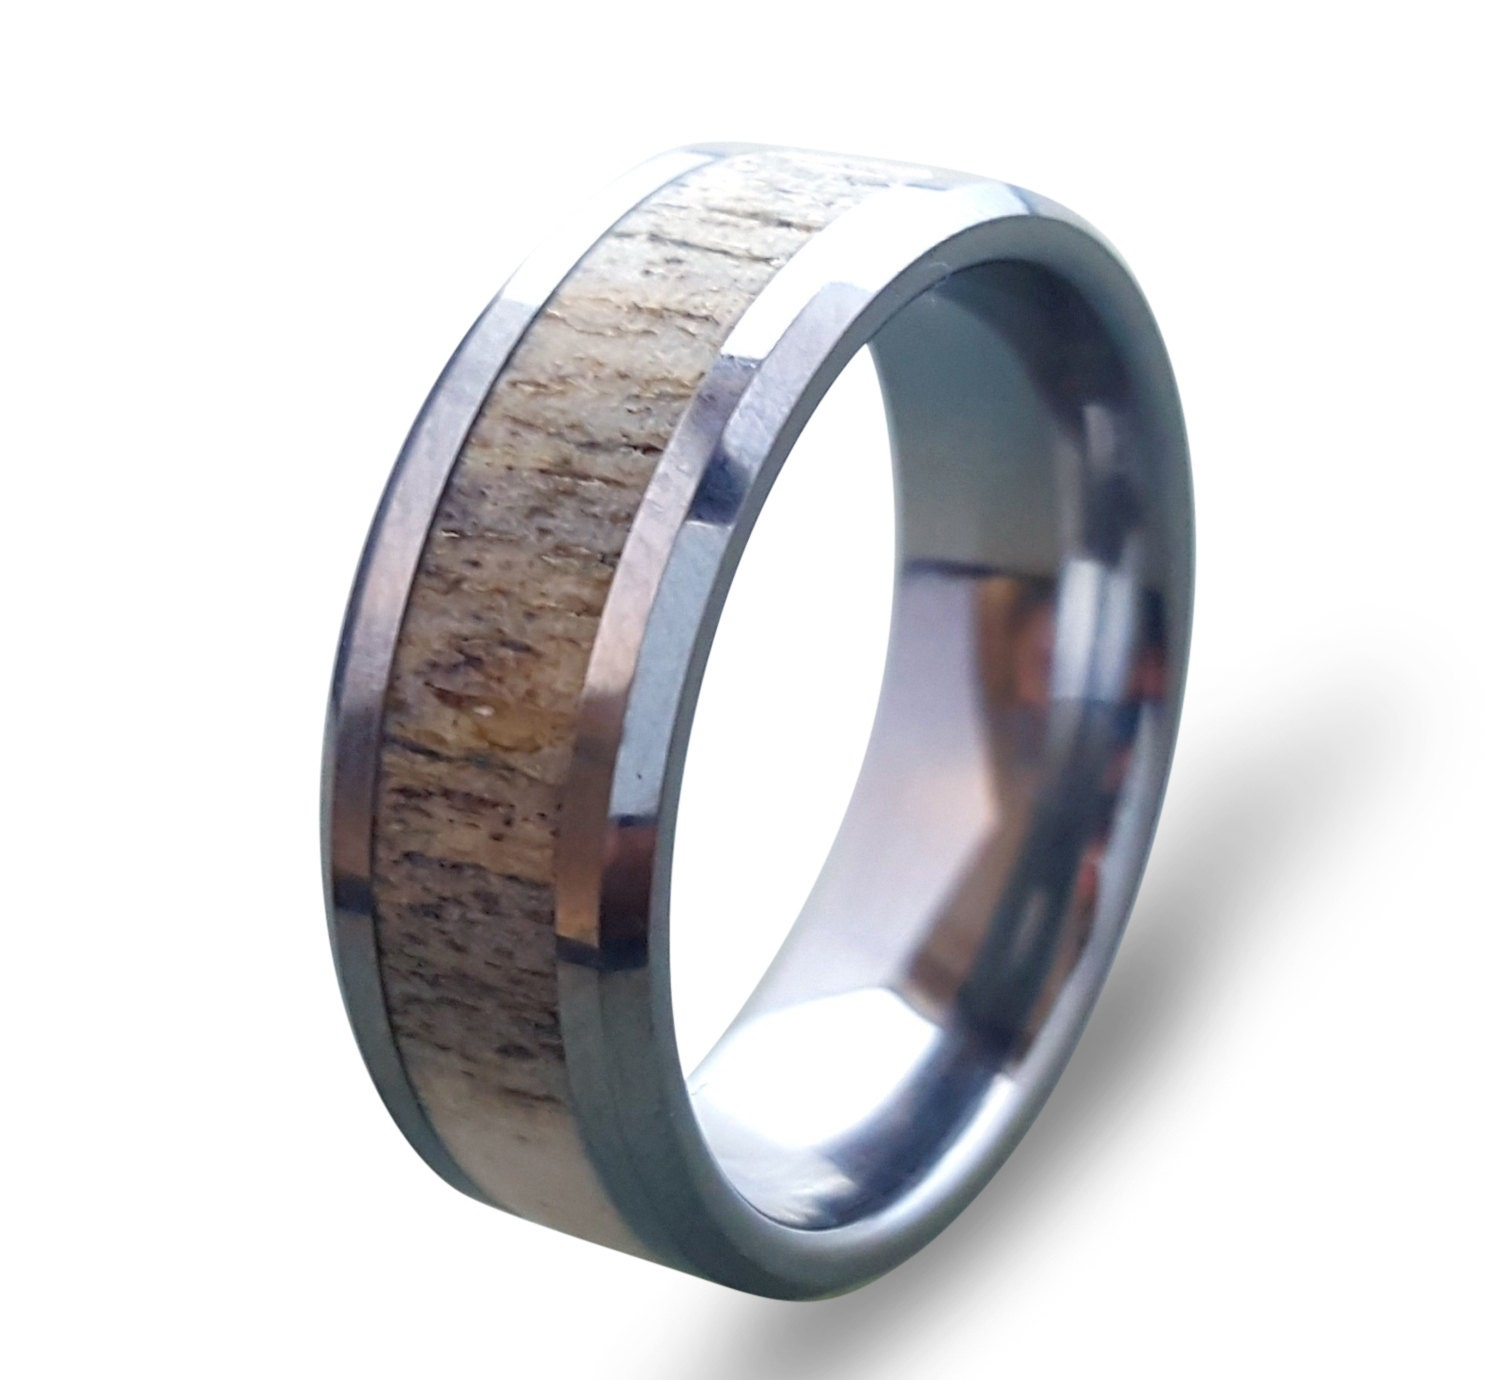 inlays elk s wedding products band by tooth divided and rings mens antler rose ivory men bands gold